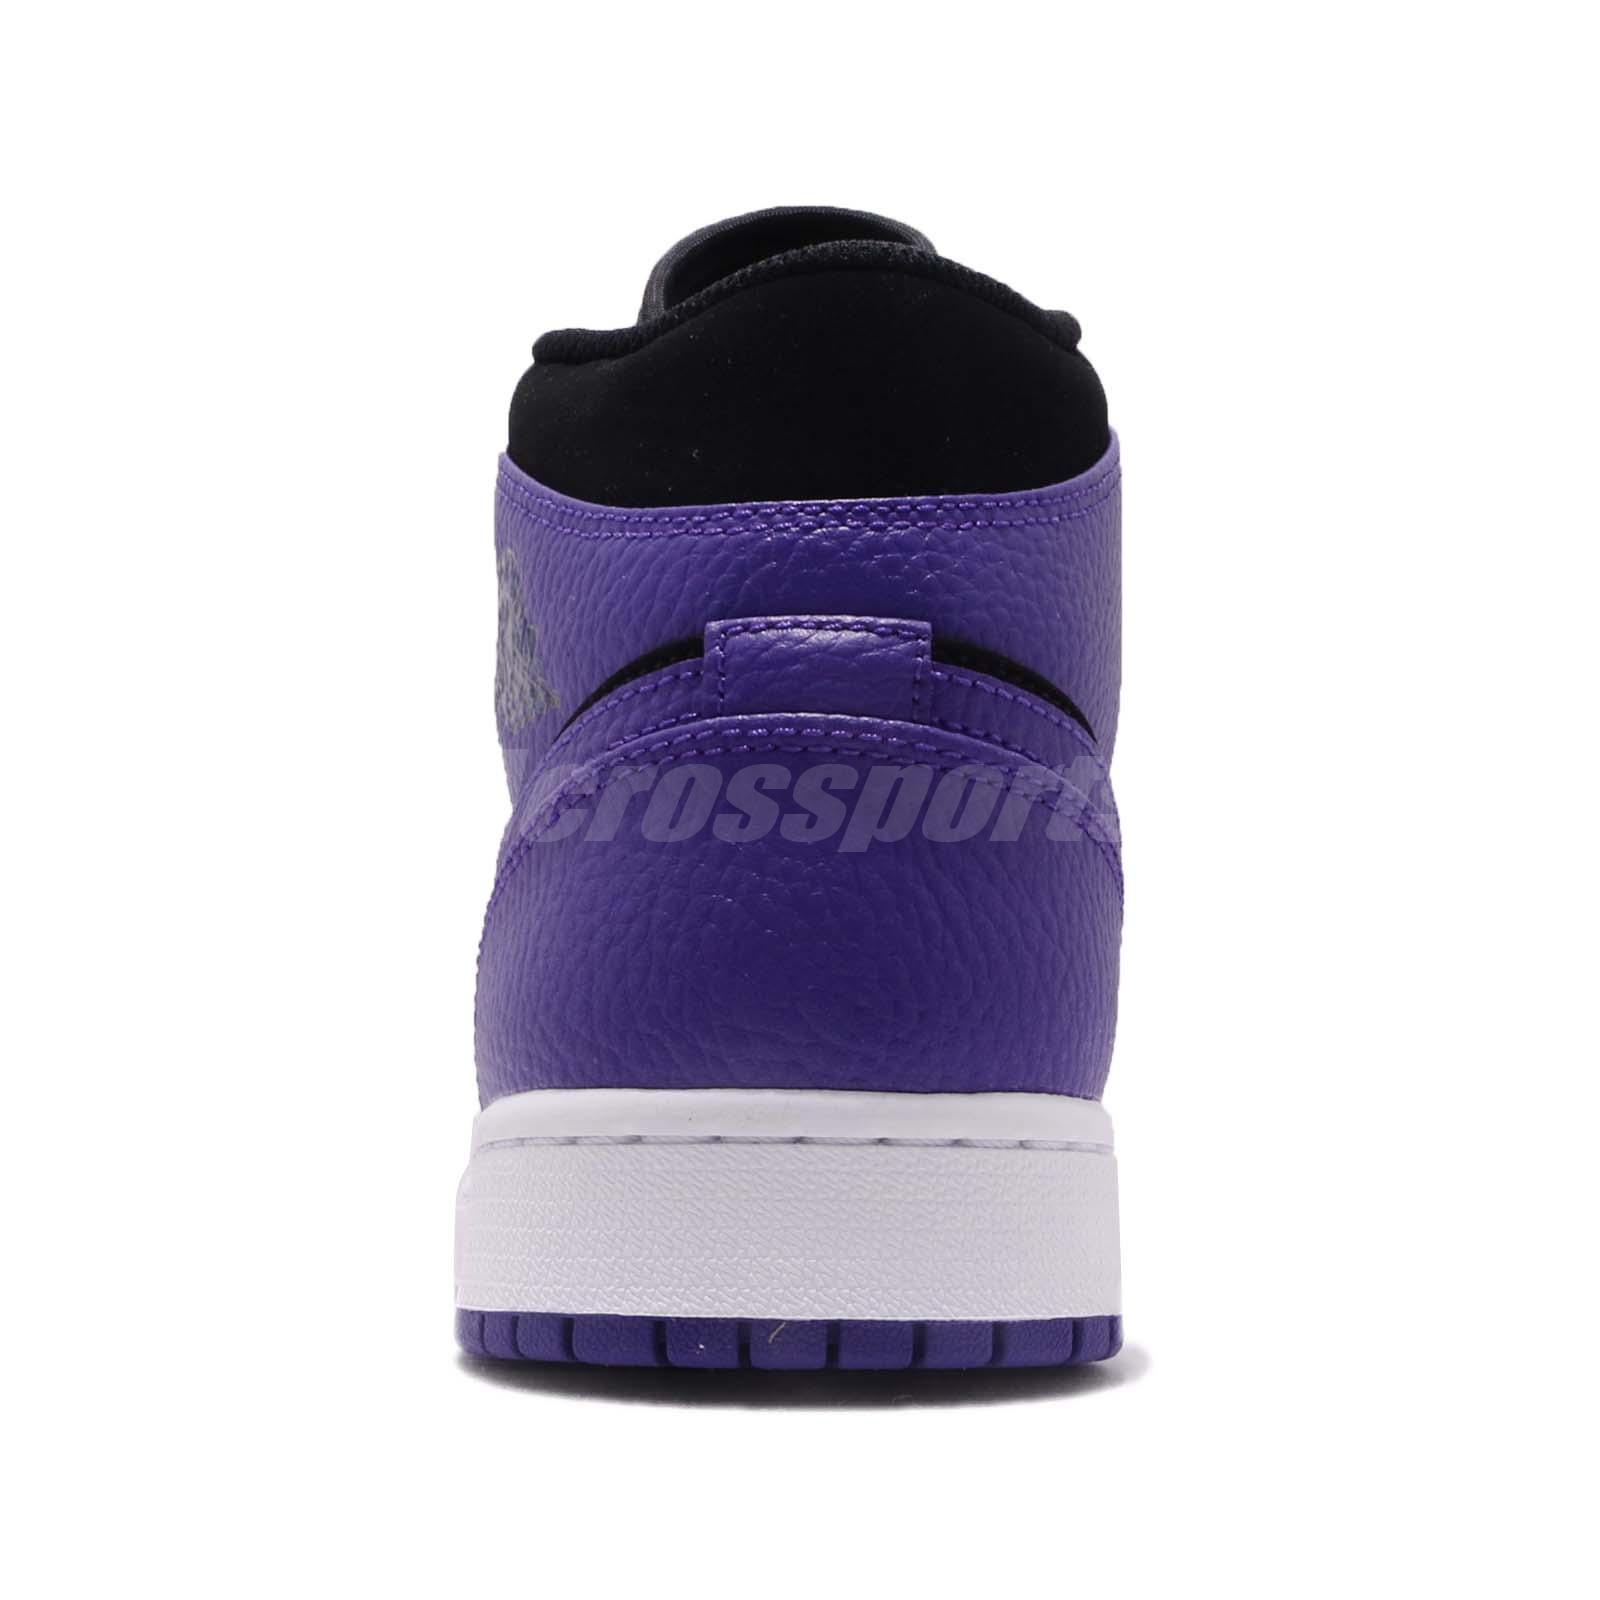 54b3c2811e3b96 Nike Air Jordan 1 Mid Black Concord Purple Mens Shoes Sneakers AJ1 ...